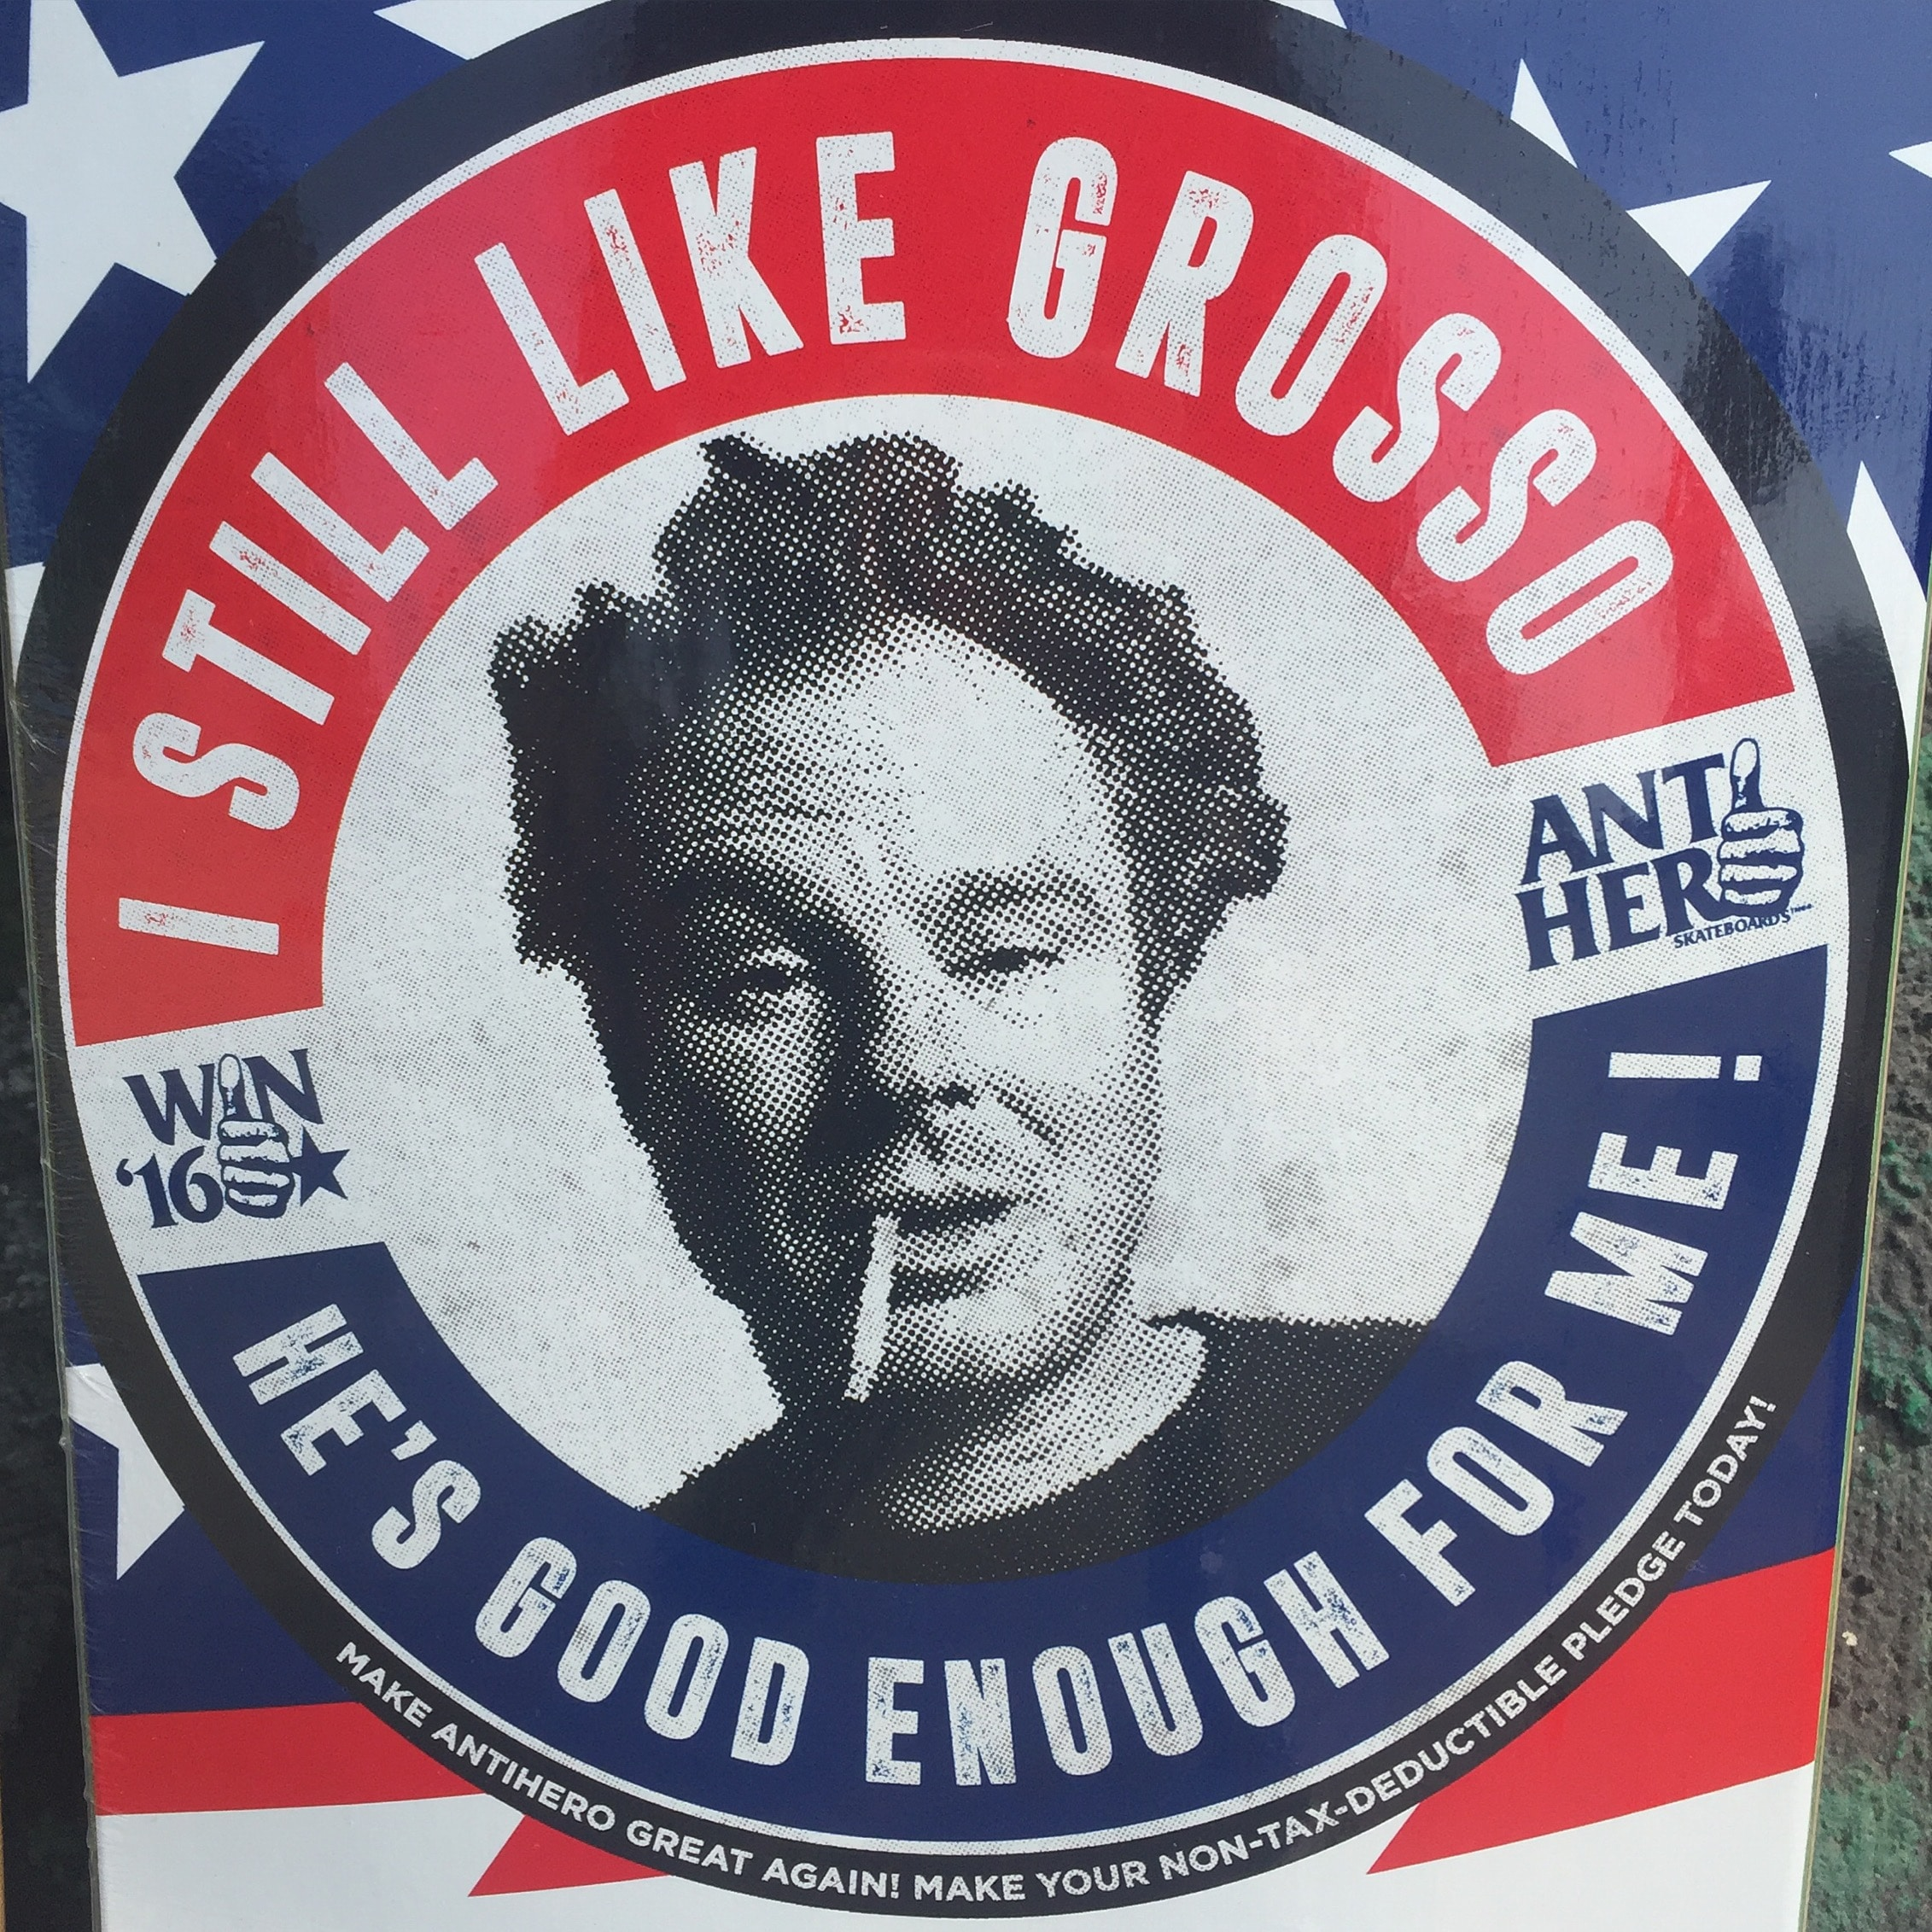 Vote for Grosso!